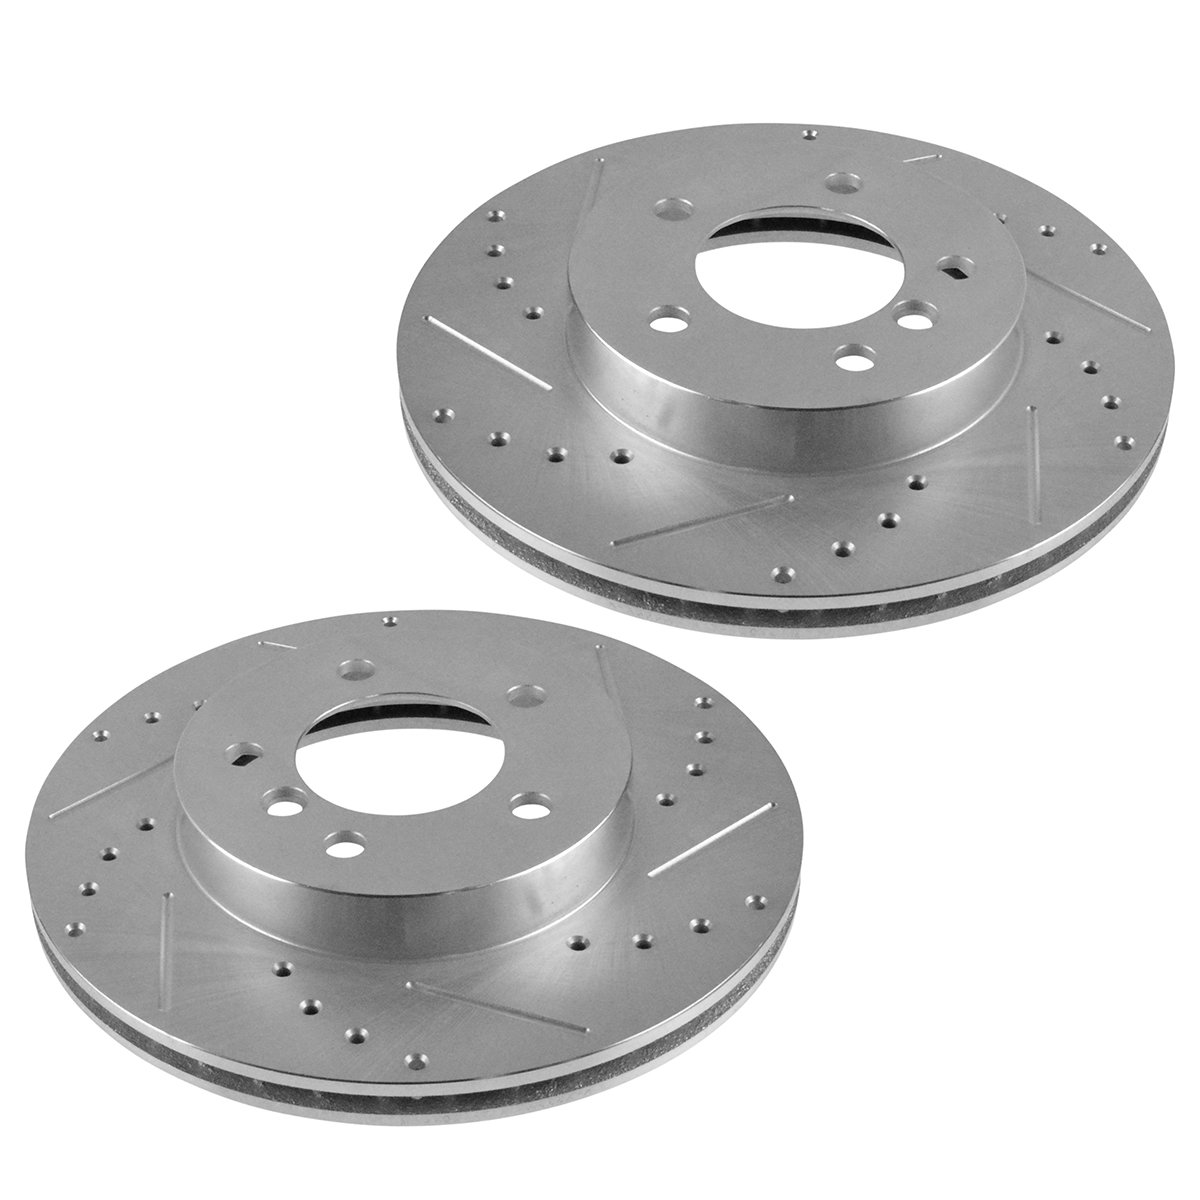 Nakamoto Performance Brake Rotor Drilled Slotted Ford Zinc Coated Pair for Ford